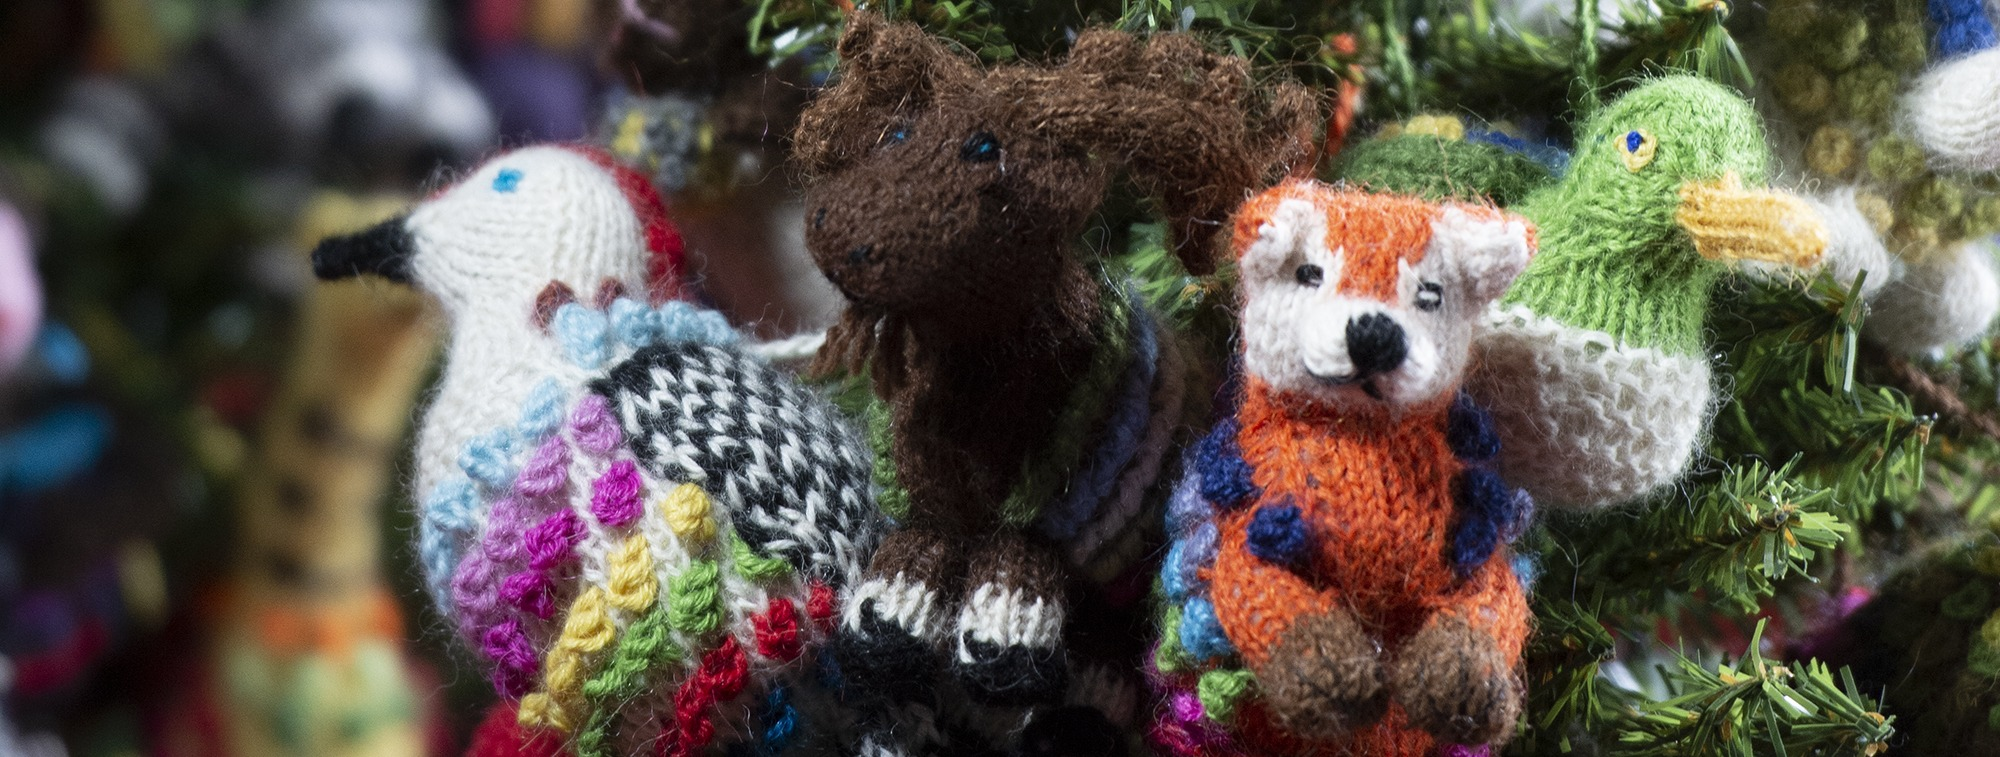 knitted alpaca wool ornaments